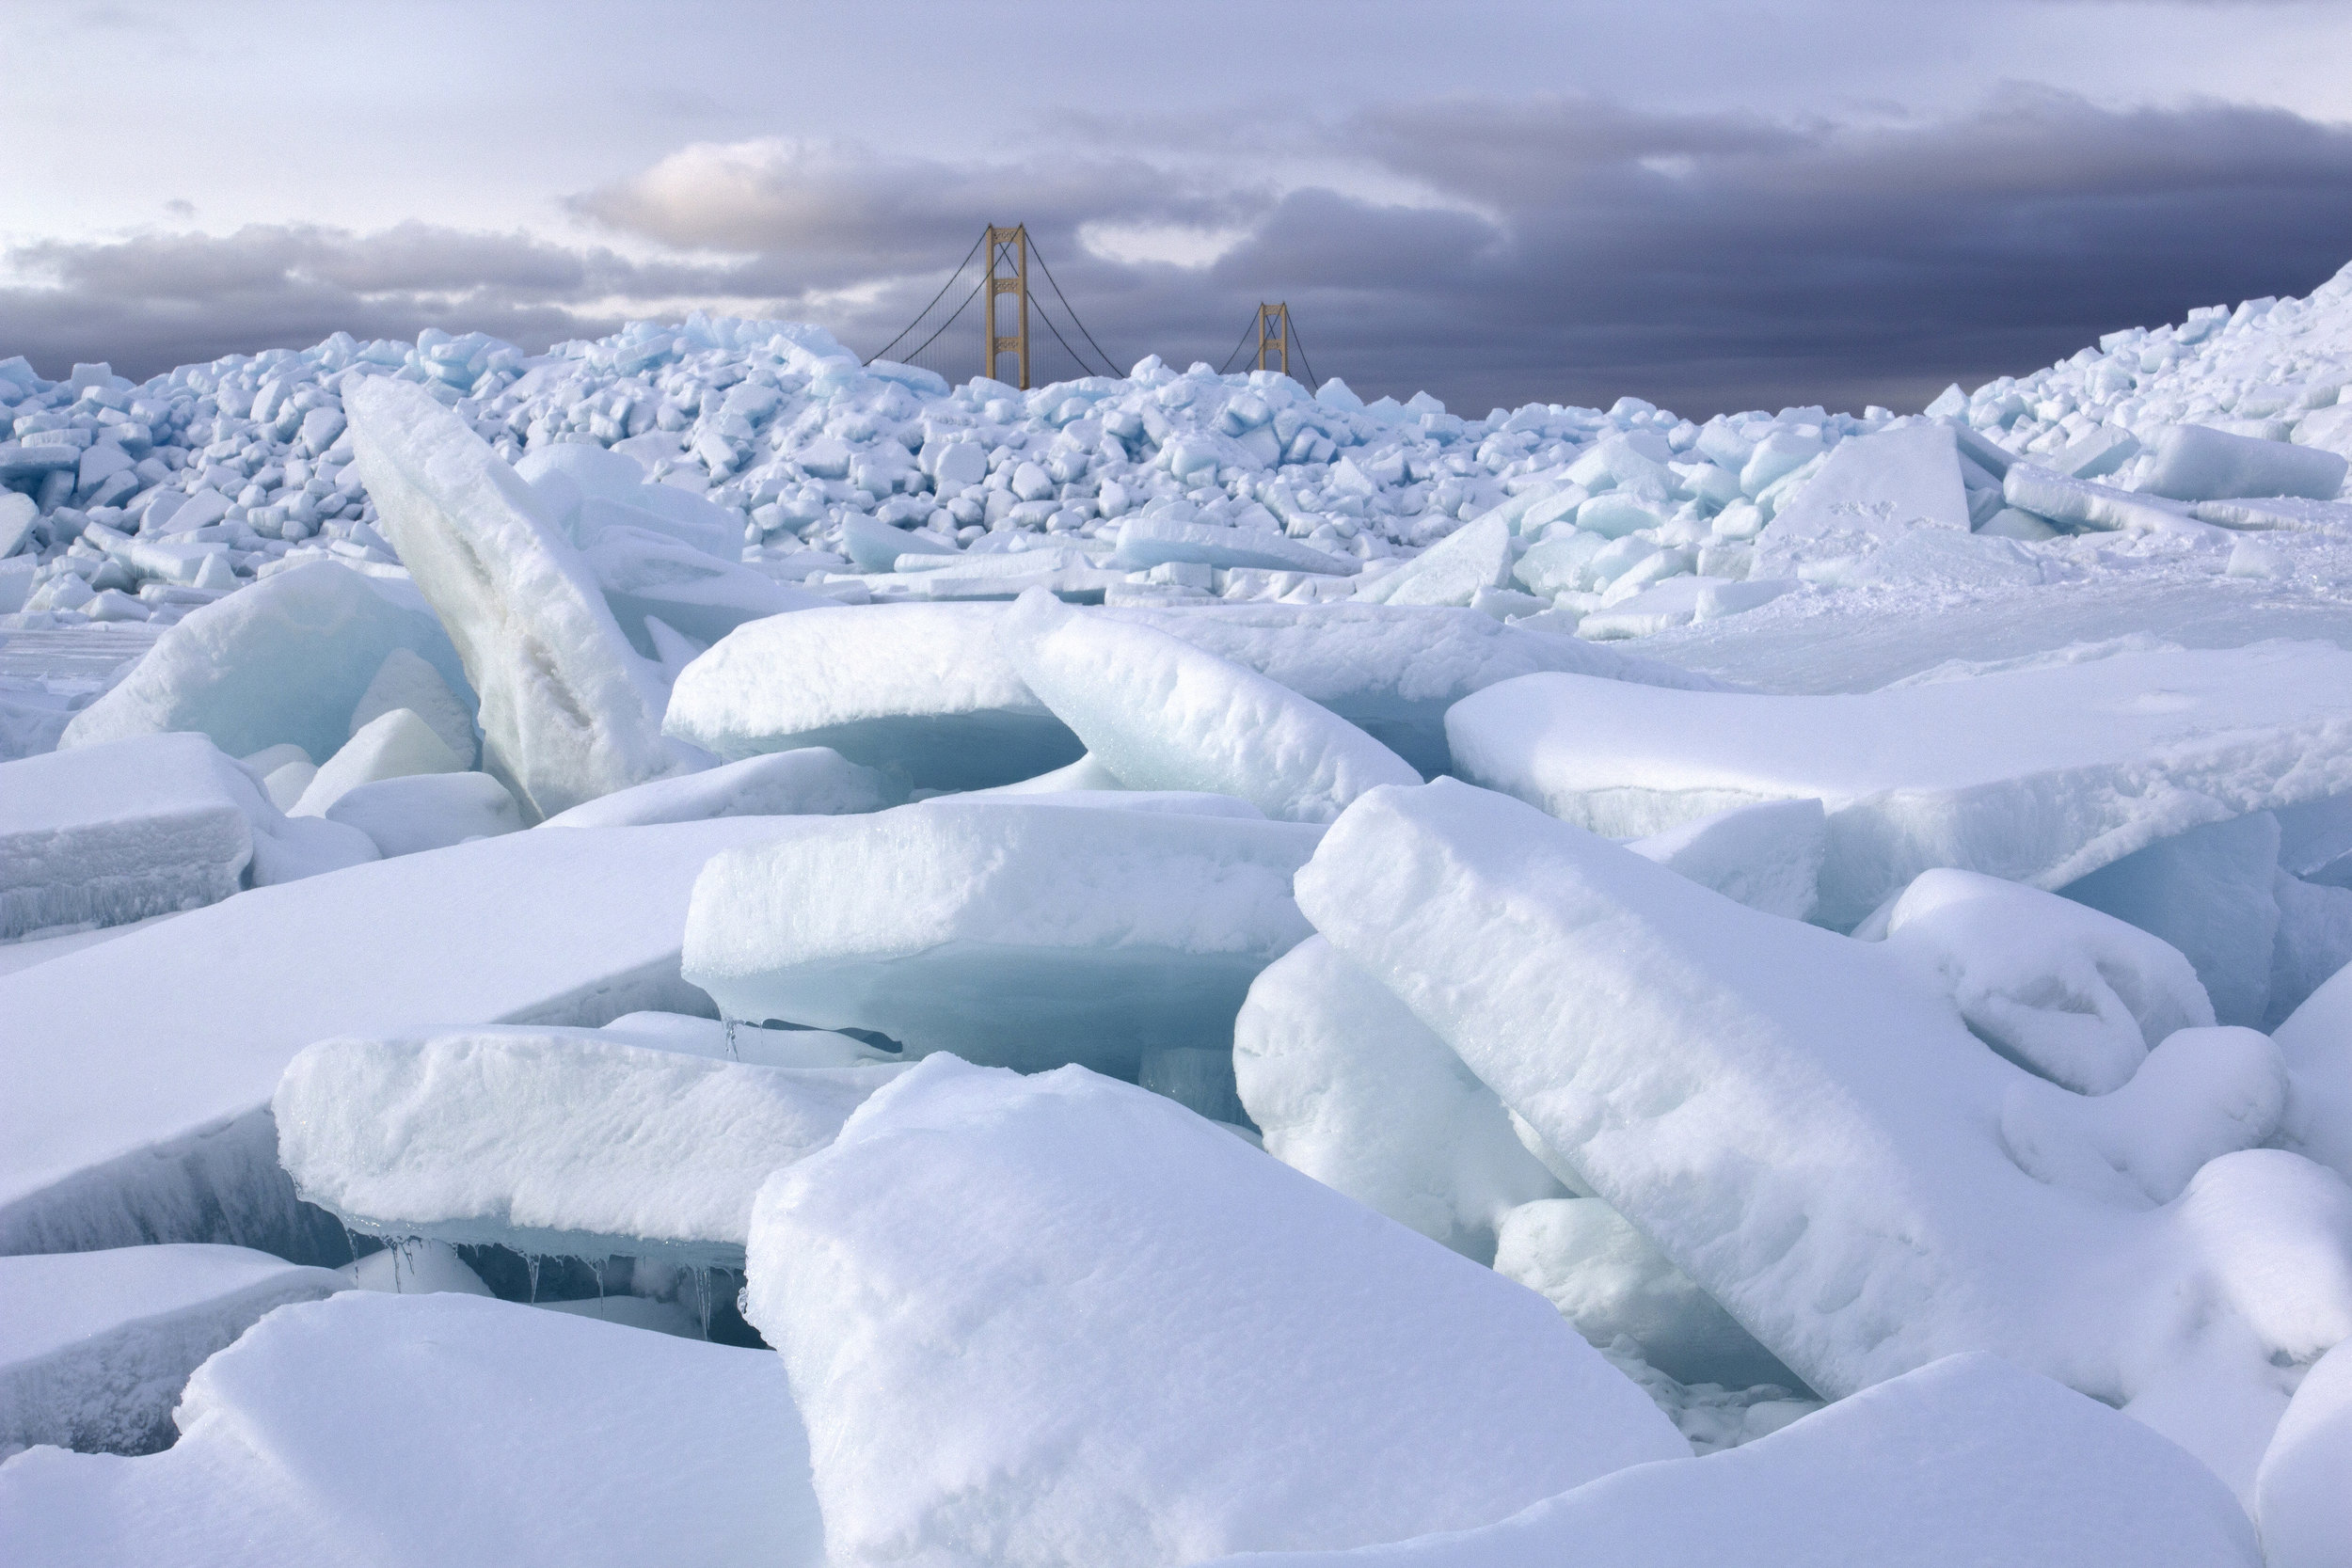 Mackinac Bridge peaking over giant piles of blue ice on the Straights of Mackinac.